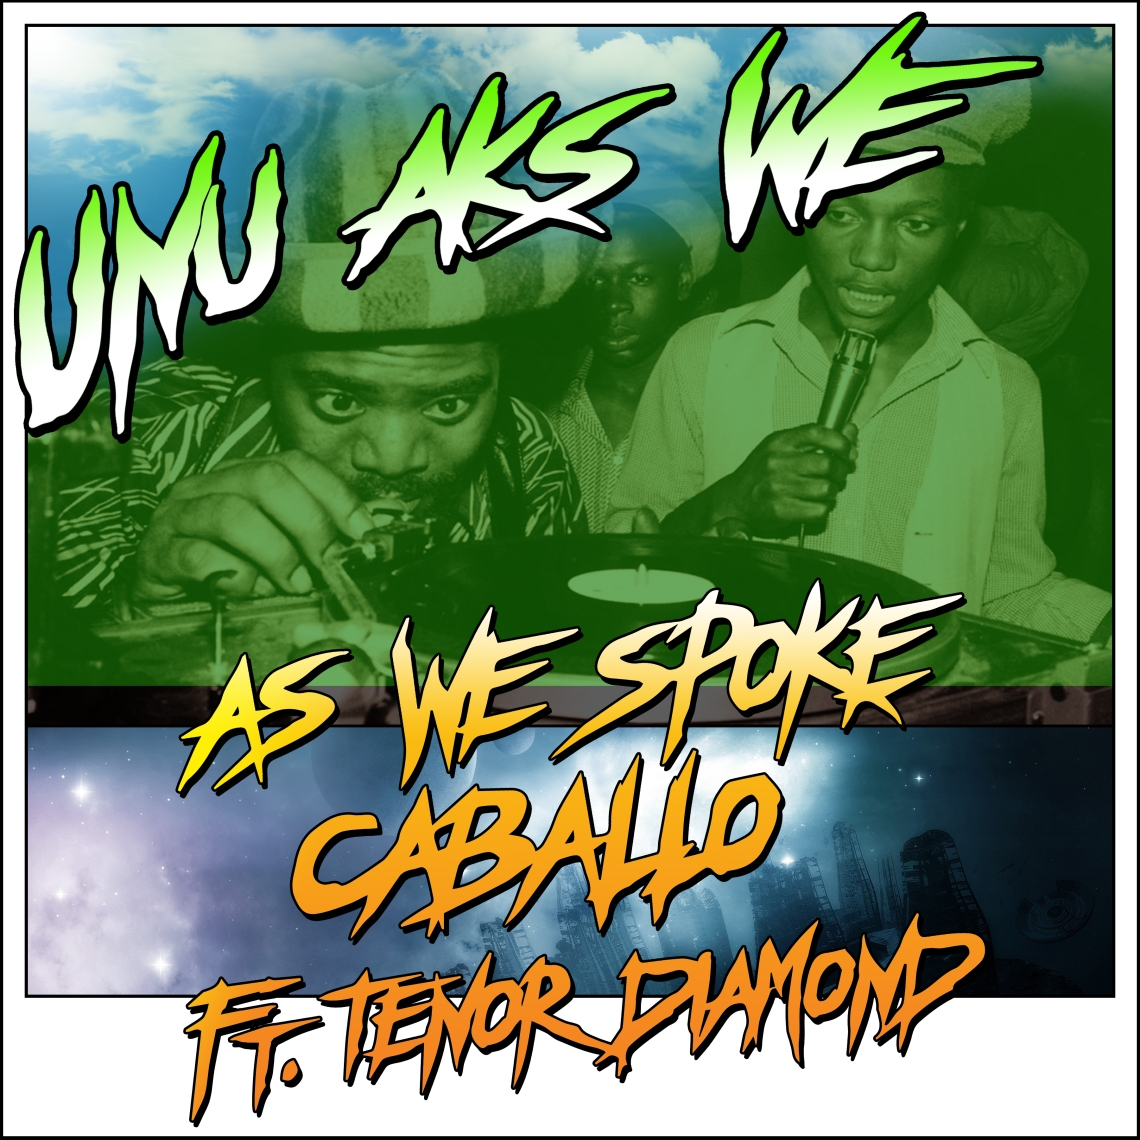 Unu-Aks-We-Cover